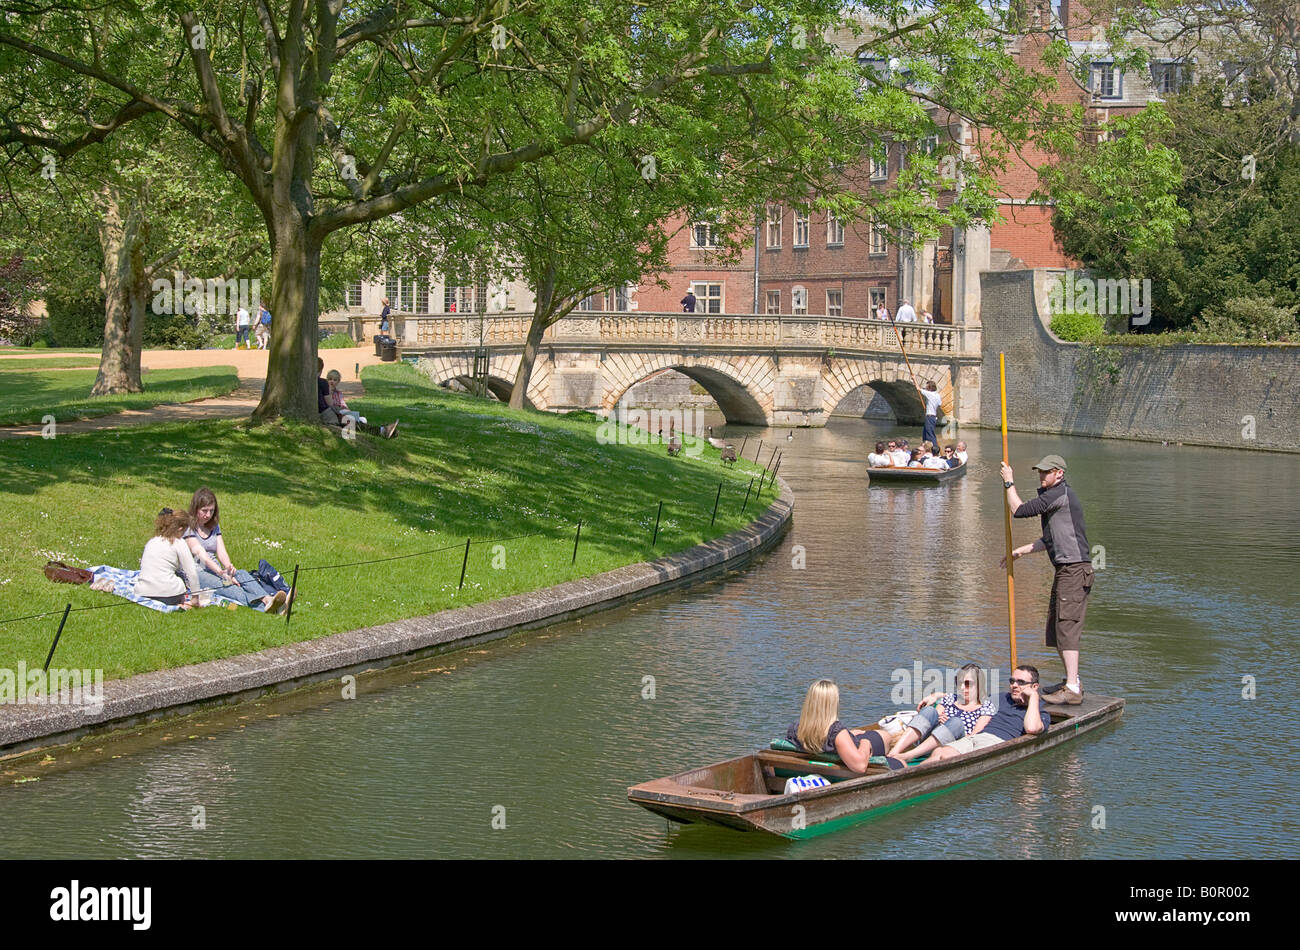 River Cam on a sunny day with punts, St Johns old bridge in background - Stock Image